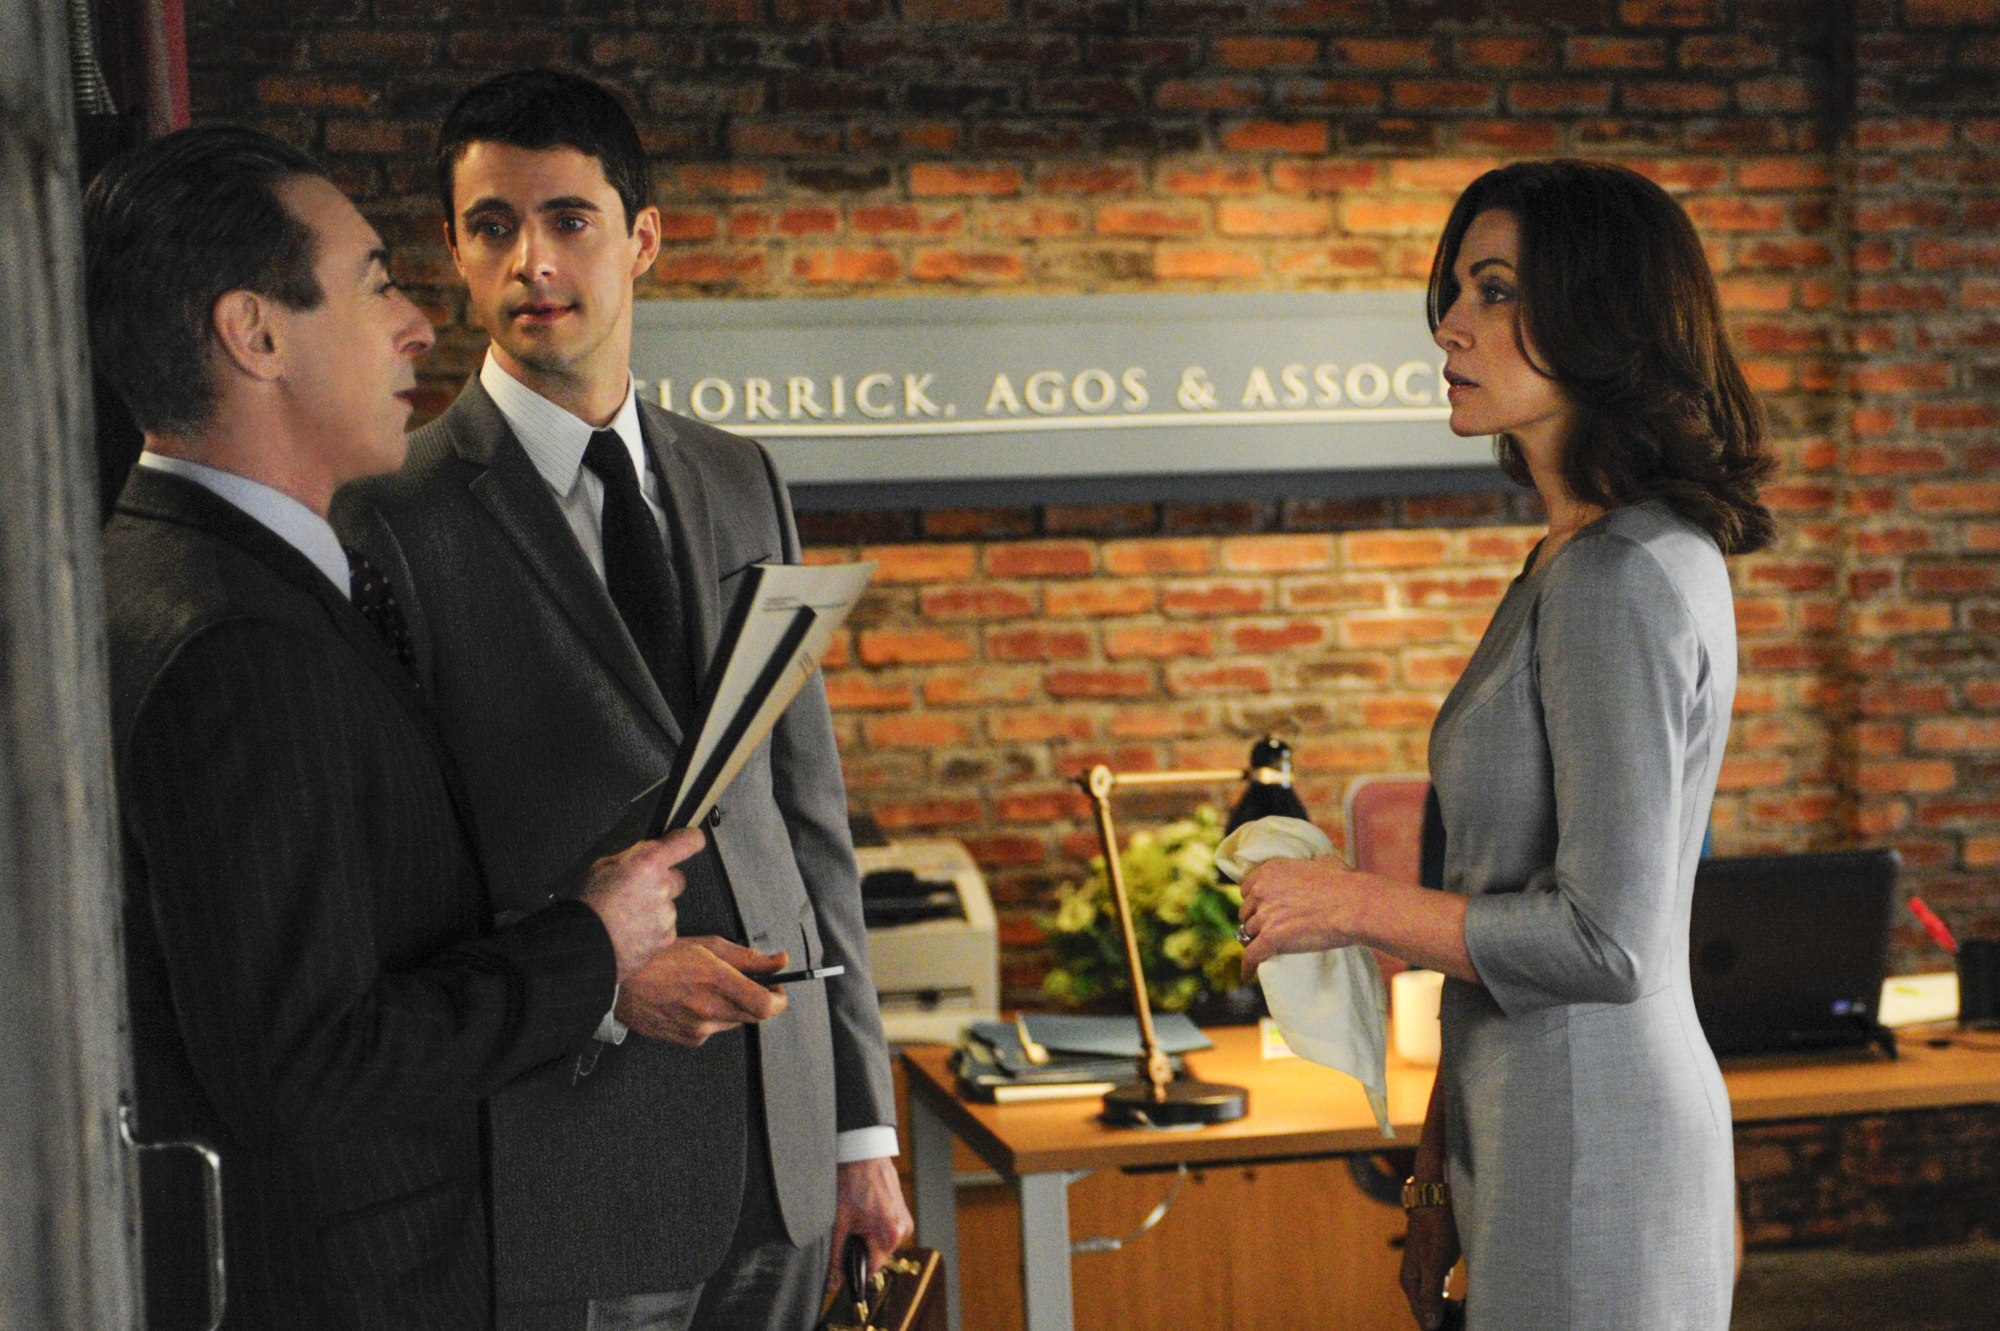 Season 5 Episode 21 - The Good Wife - CBS.com